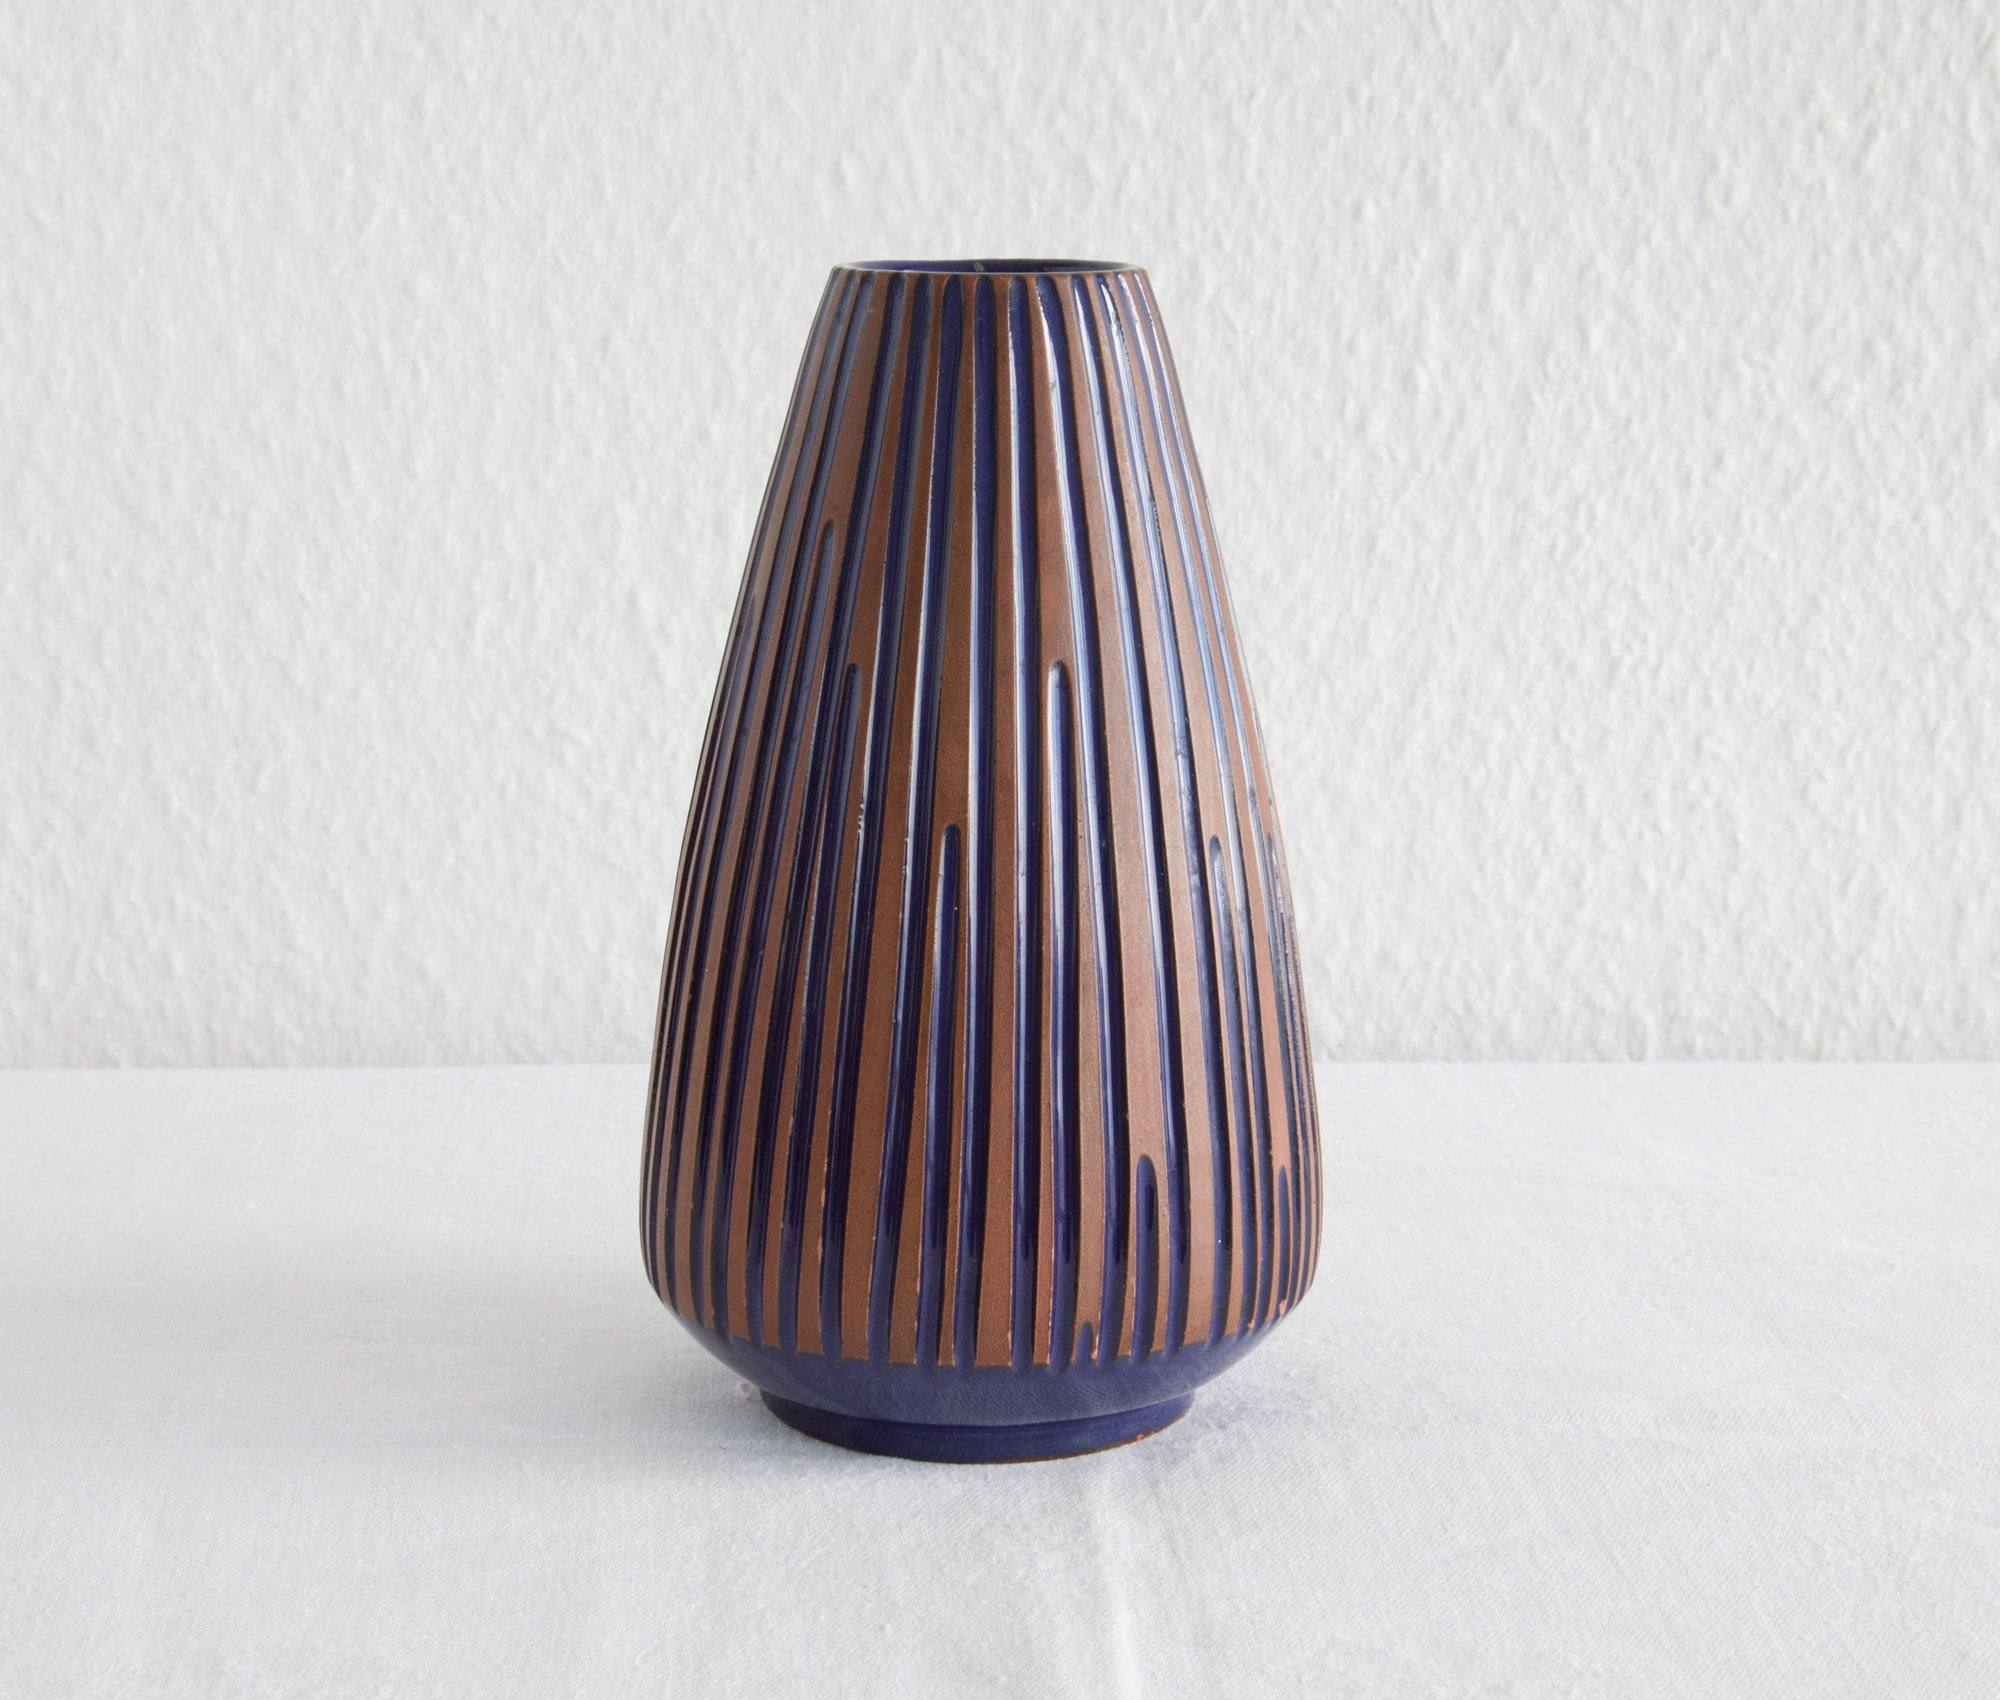 LØVEMOSE Ribbed Blue & Brown Glazed Ceramic Vase - Mollaris.com